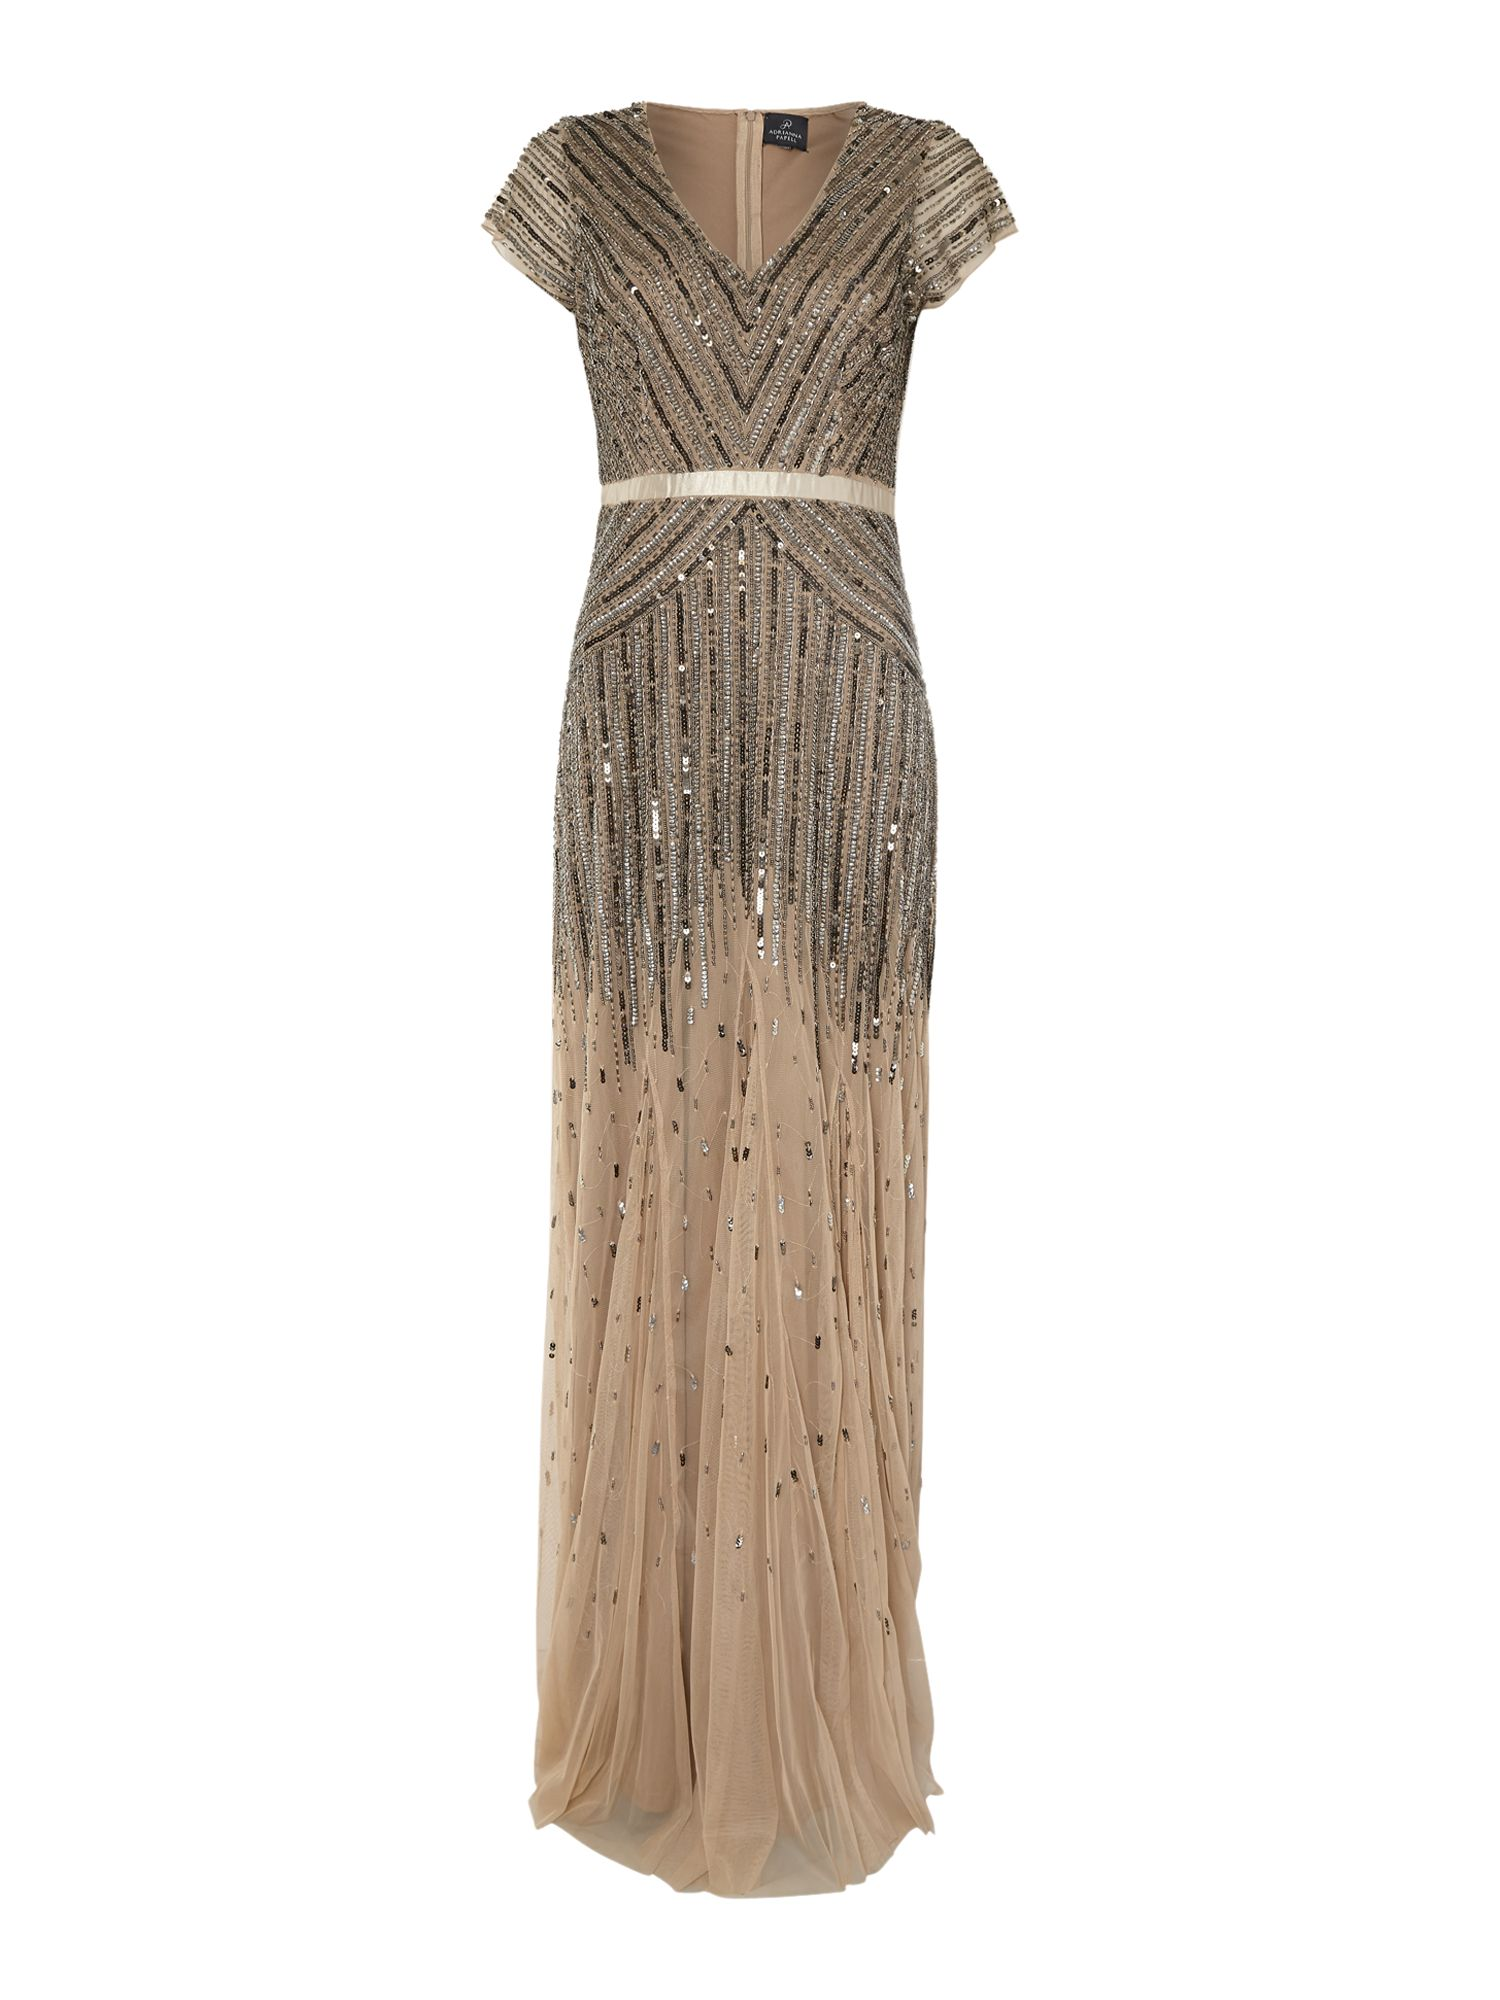 1920s style dresses uk great gatsby to downton abbey for Quality classic house of fraser